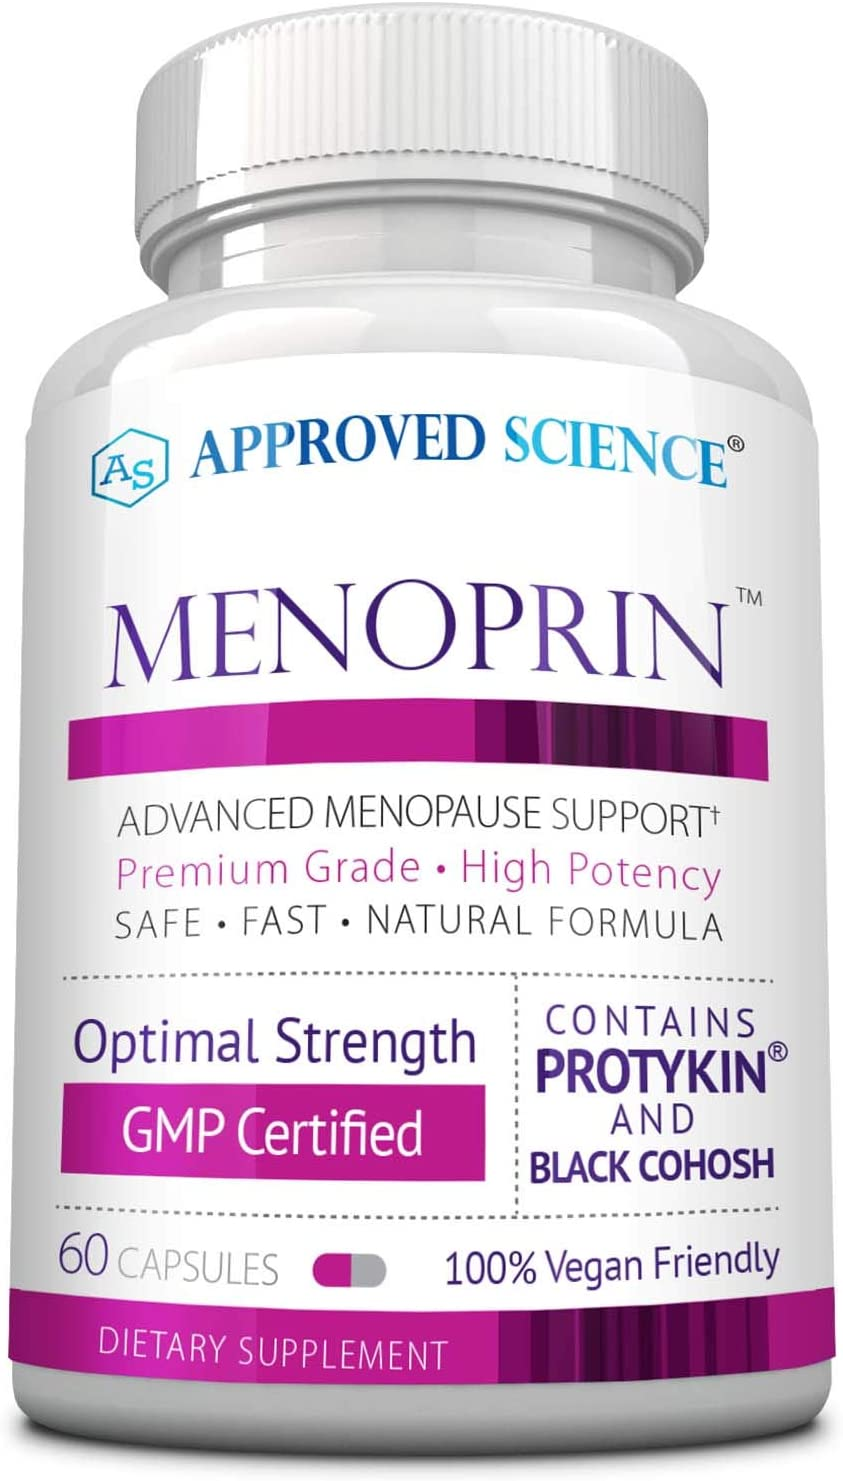 Menoprin service Super special price - Rapid Menopause Relief Mood Hot Flashes S Relieve